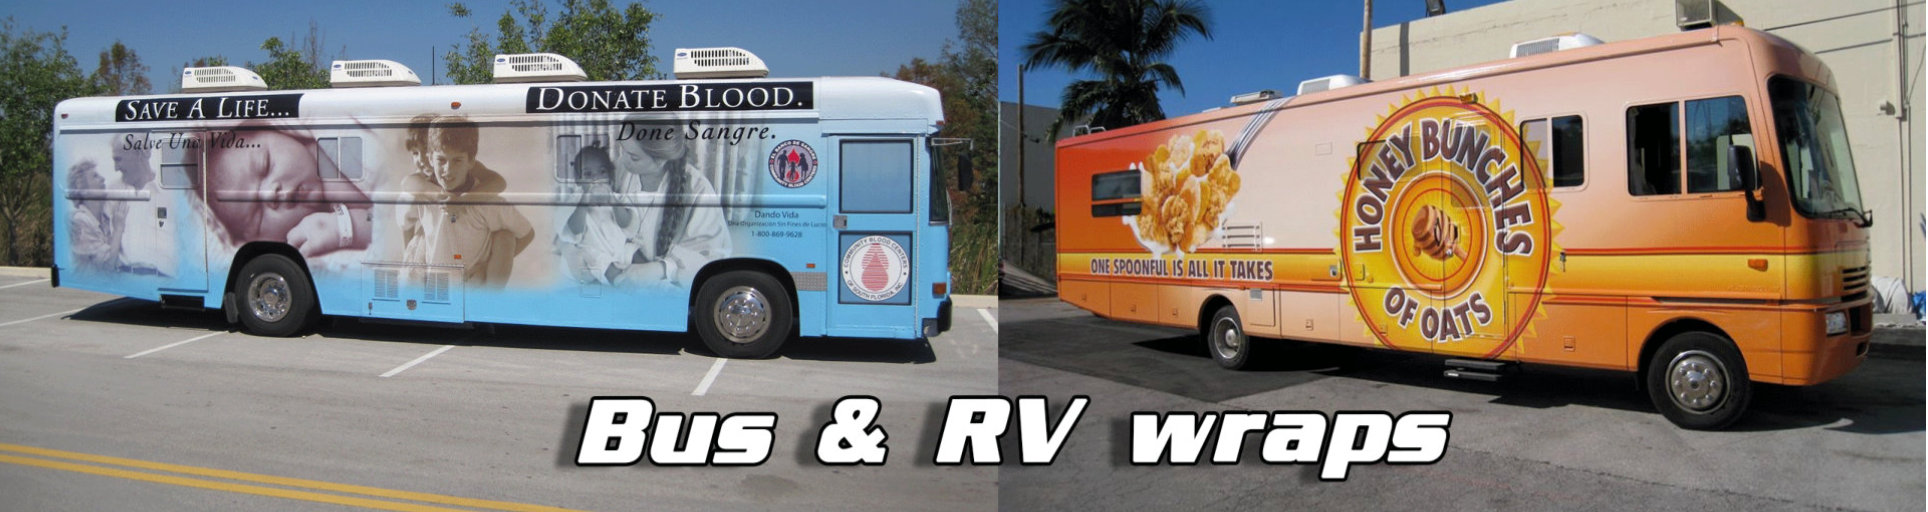 a bus in blood donation wrap advertising and an RV in Honey Bunches oats wrap advertising